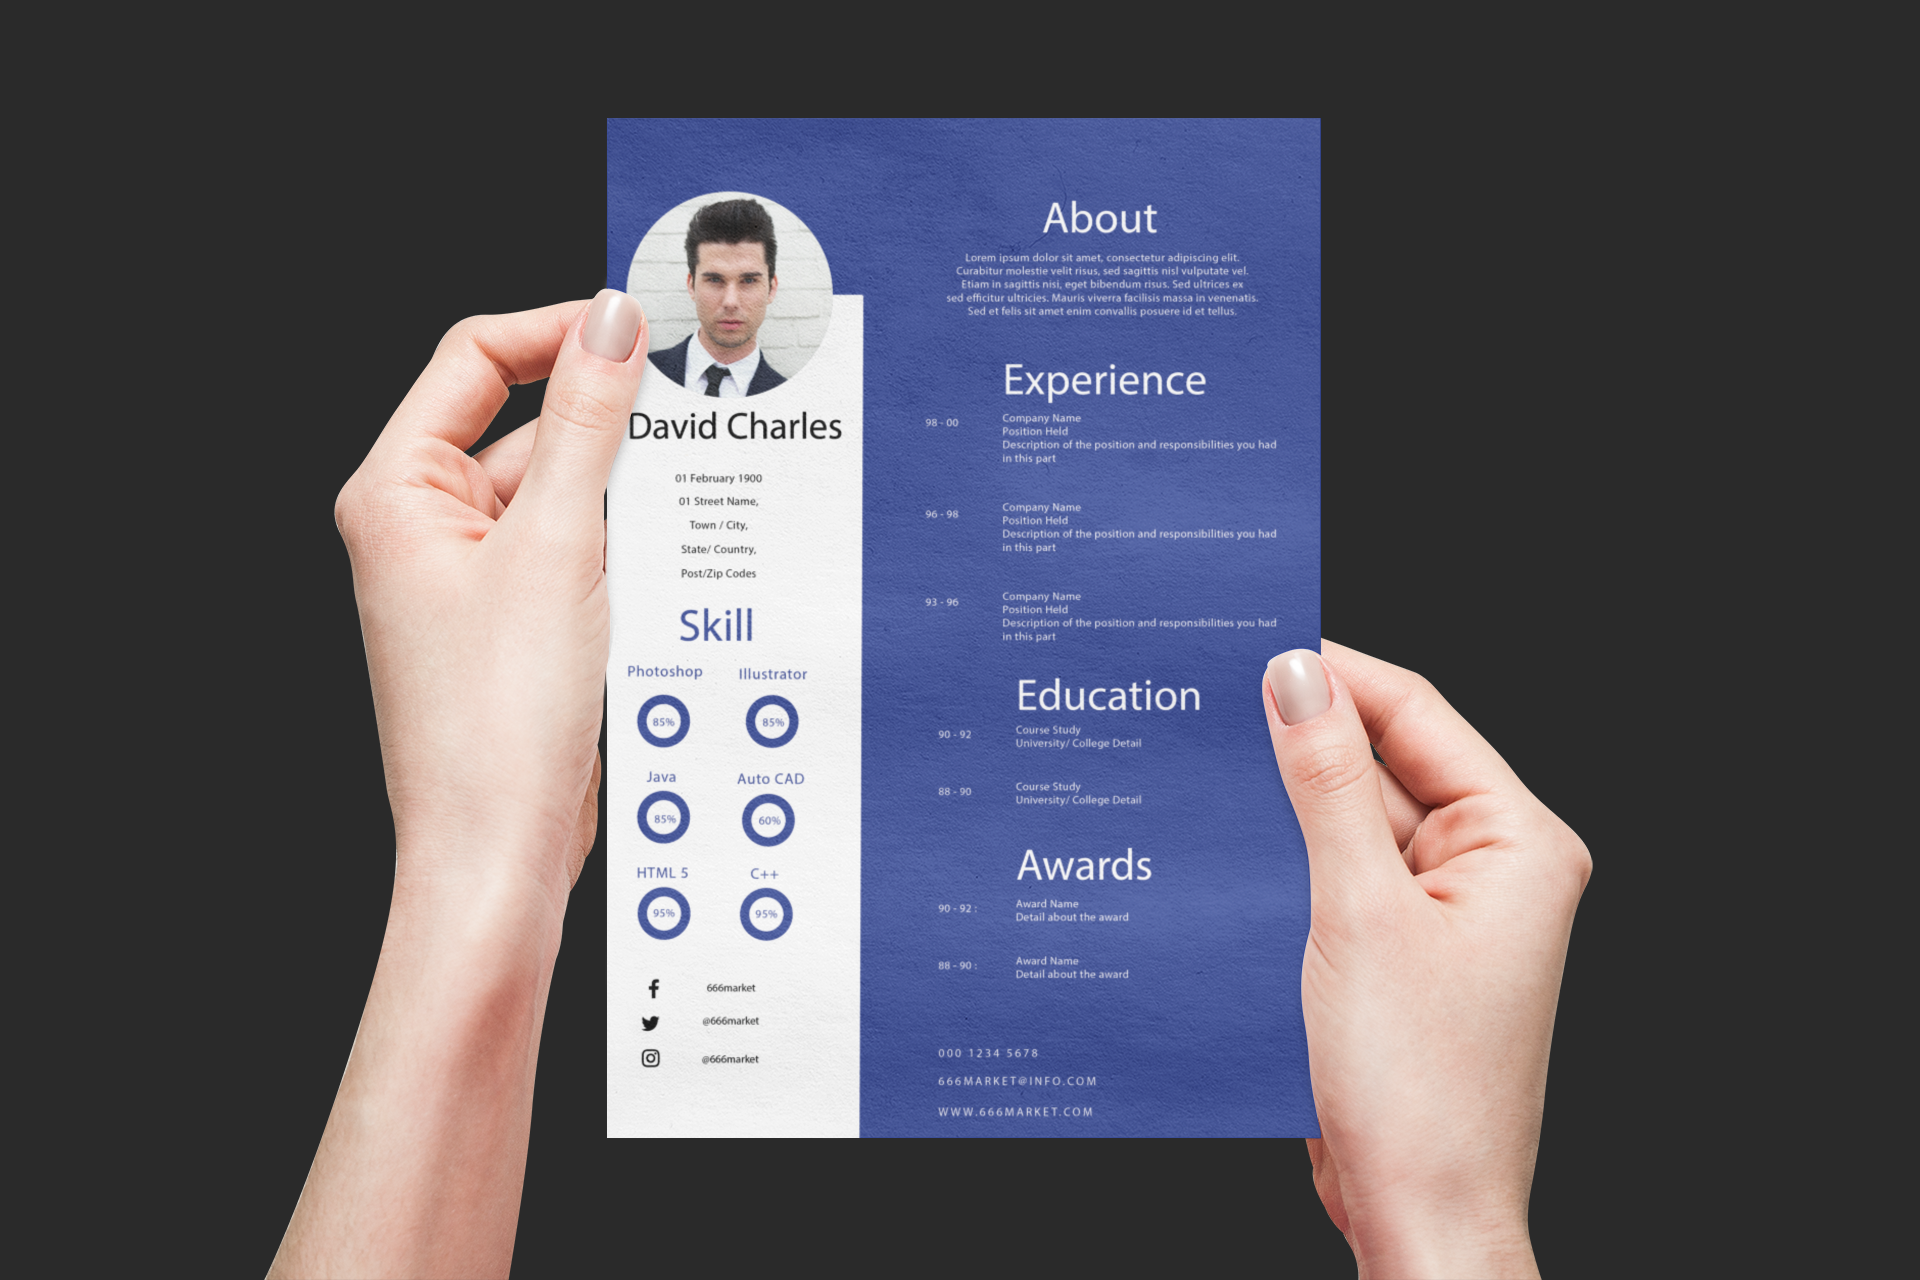 Professional CV Template For All Type of Professionals. Presented Print Template for Resume/ CV Purposes